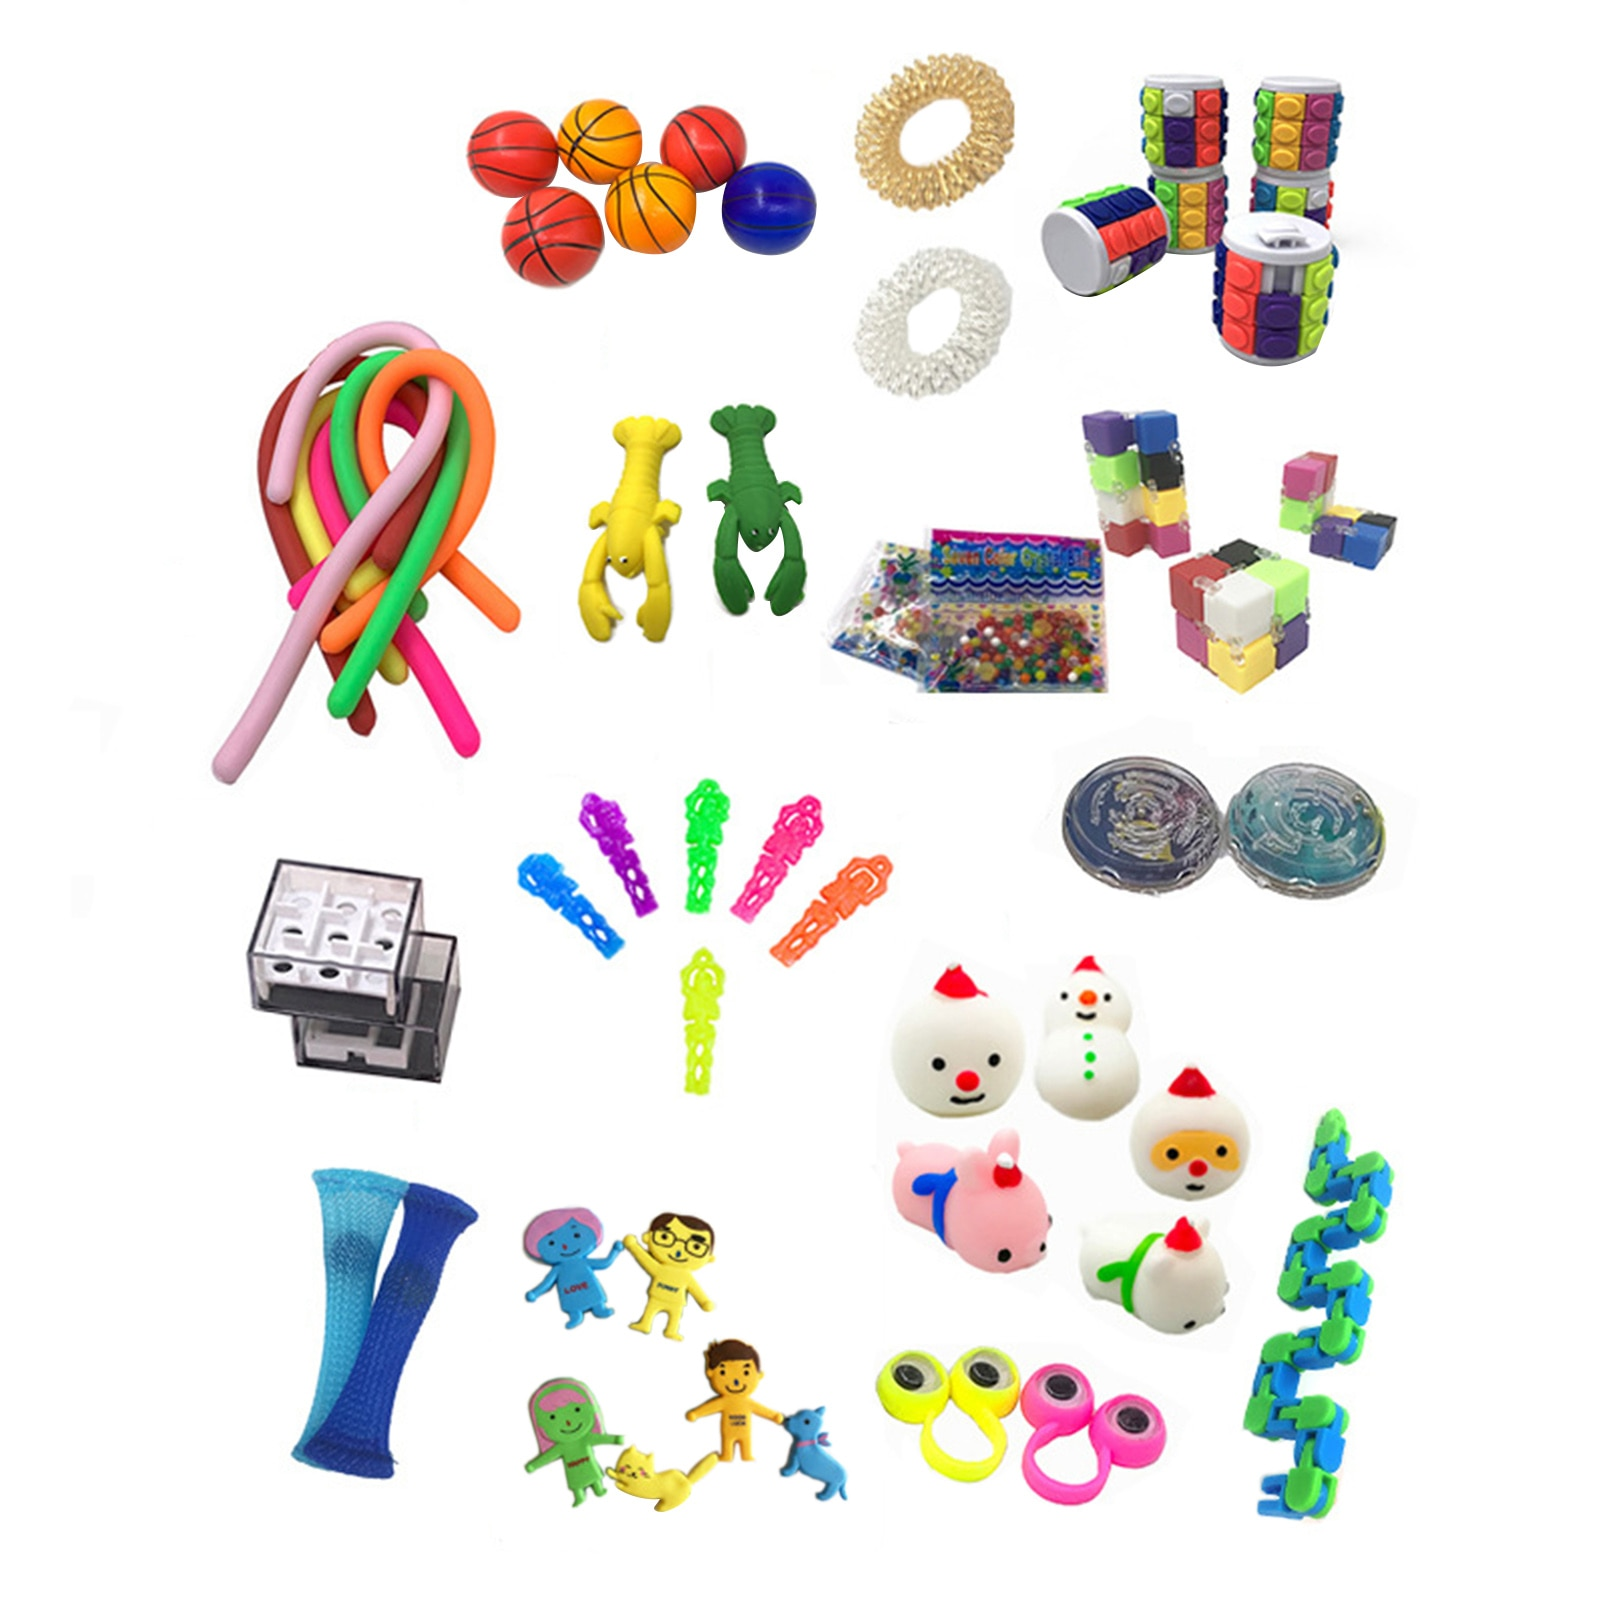 50Pcs/Pack Fidget Sensory Toy Set Stress Relief Toys Autism Anxiety Relief Stress Pop Bubble Fidget Sensory Toy For Kids Adults